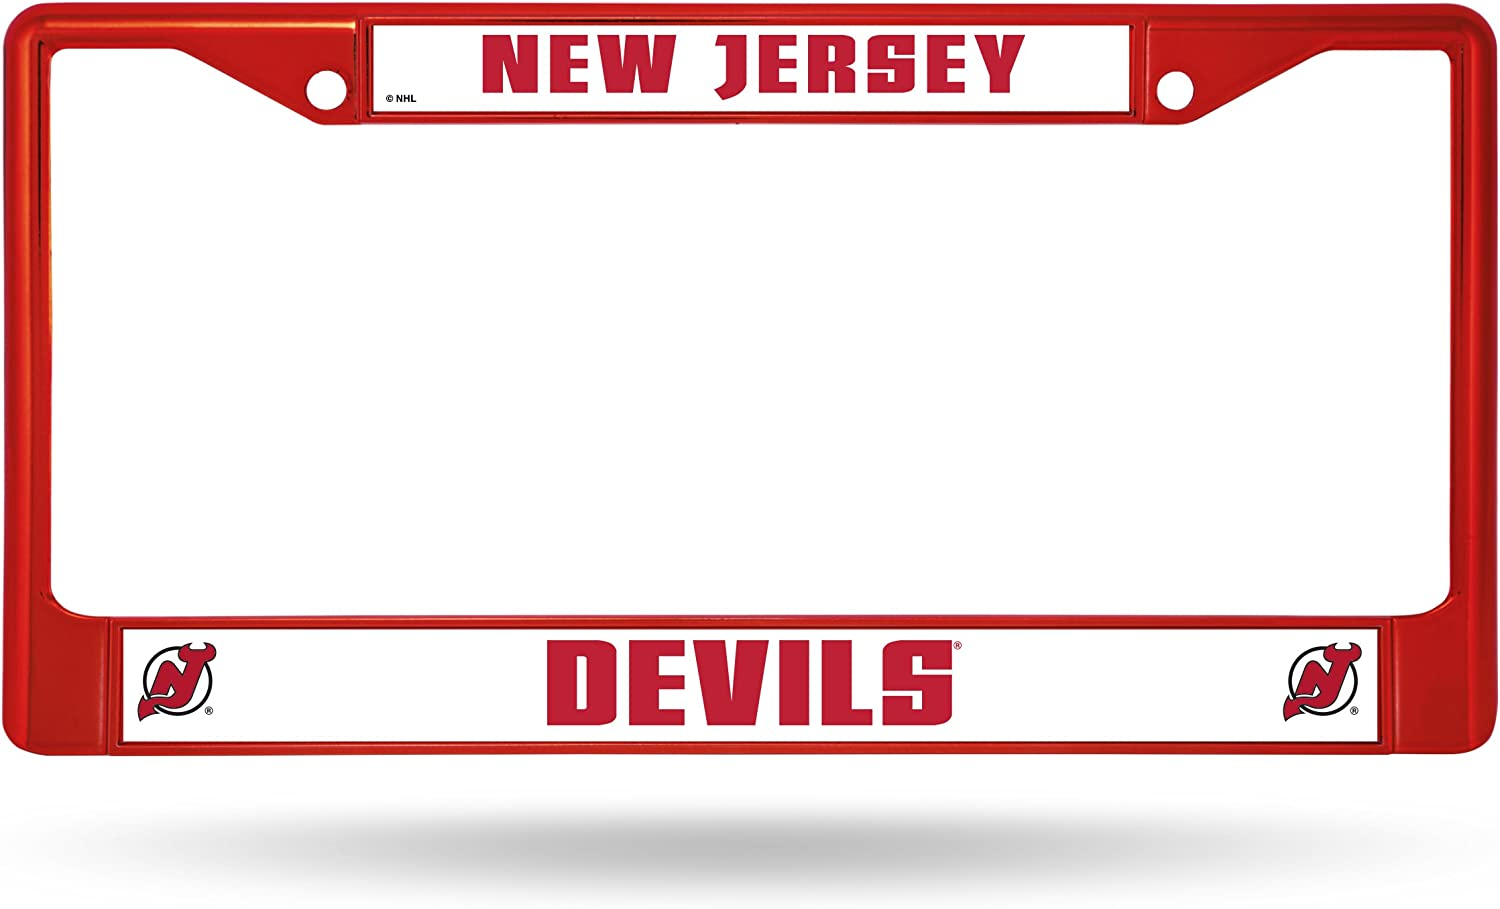 NHL Rico Industries  Standard Chrome License Plate Frame New Jersey Devils